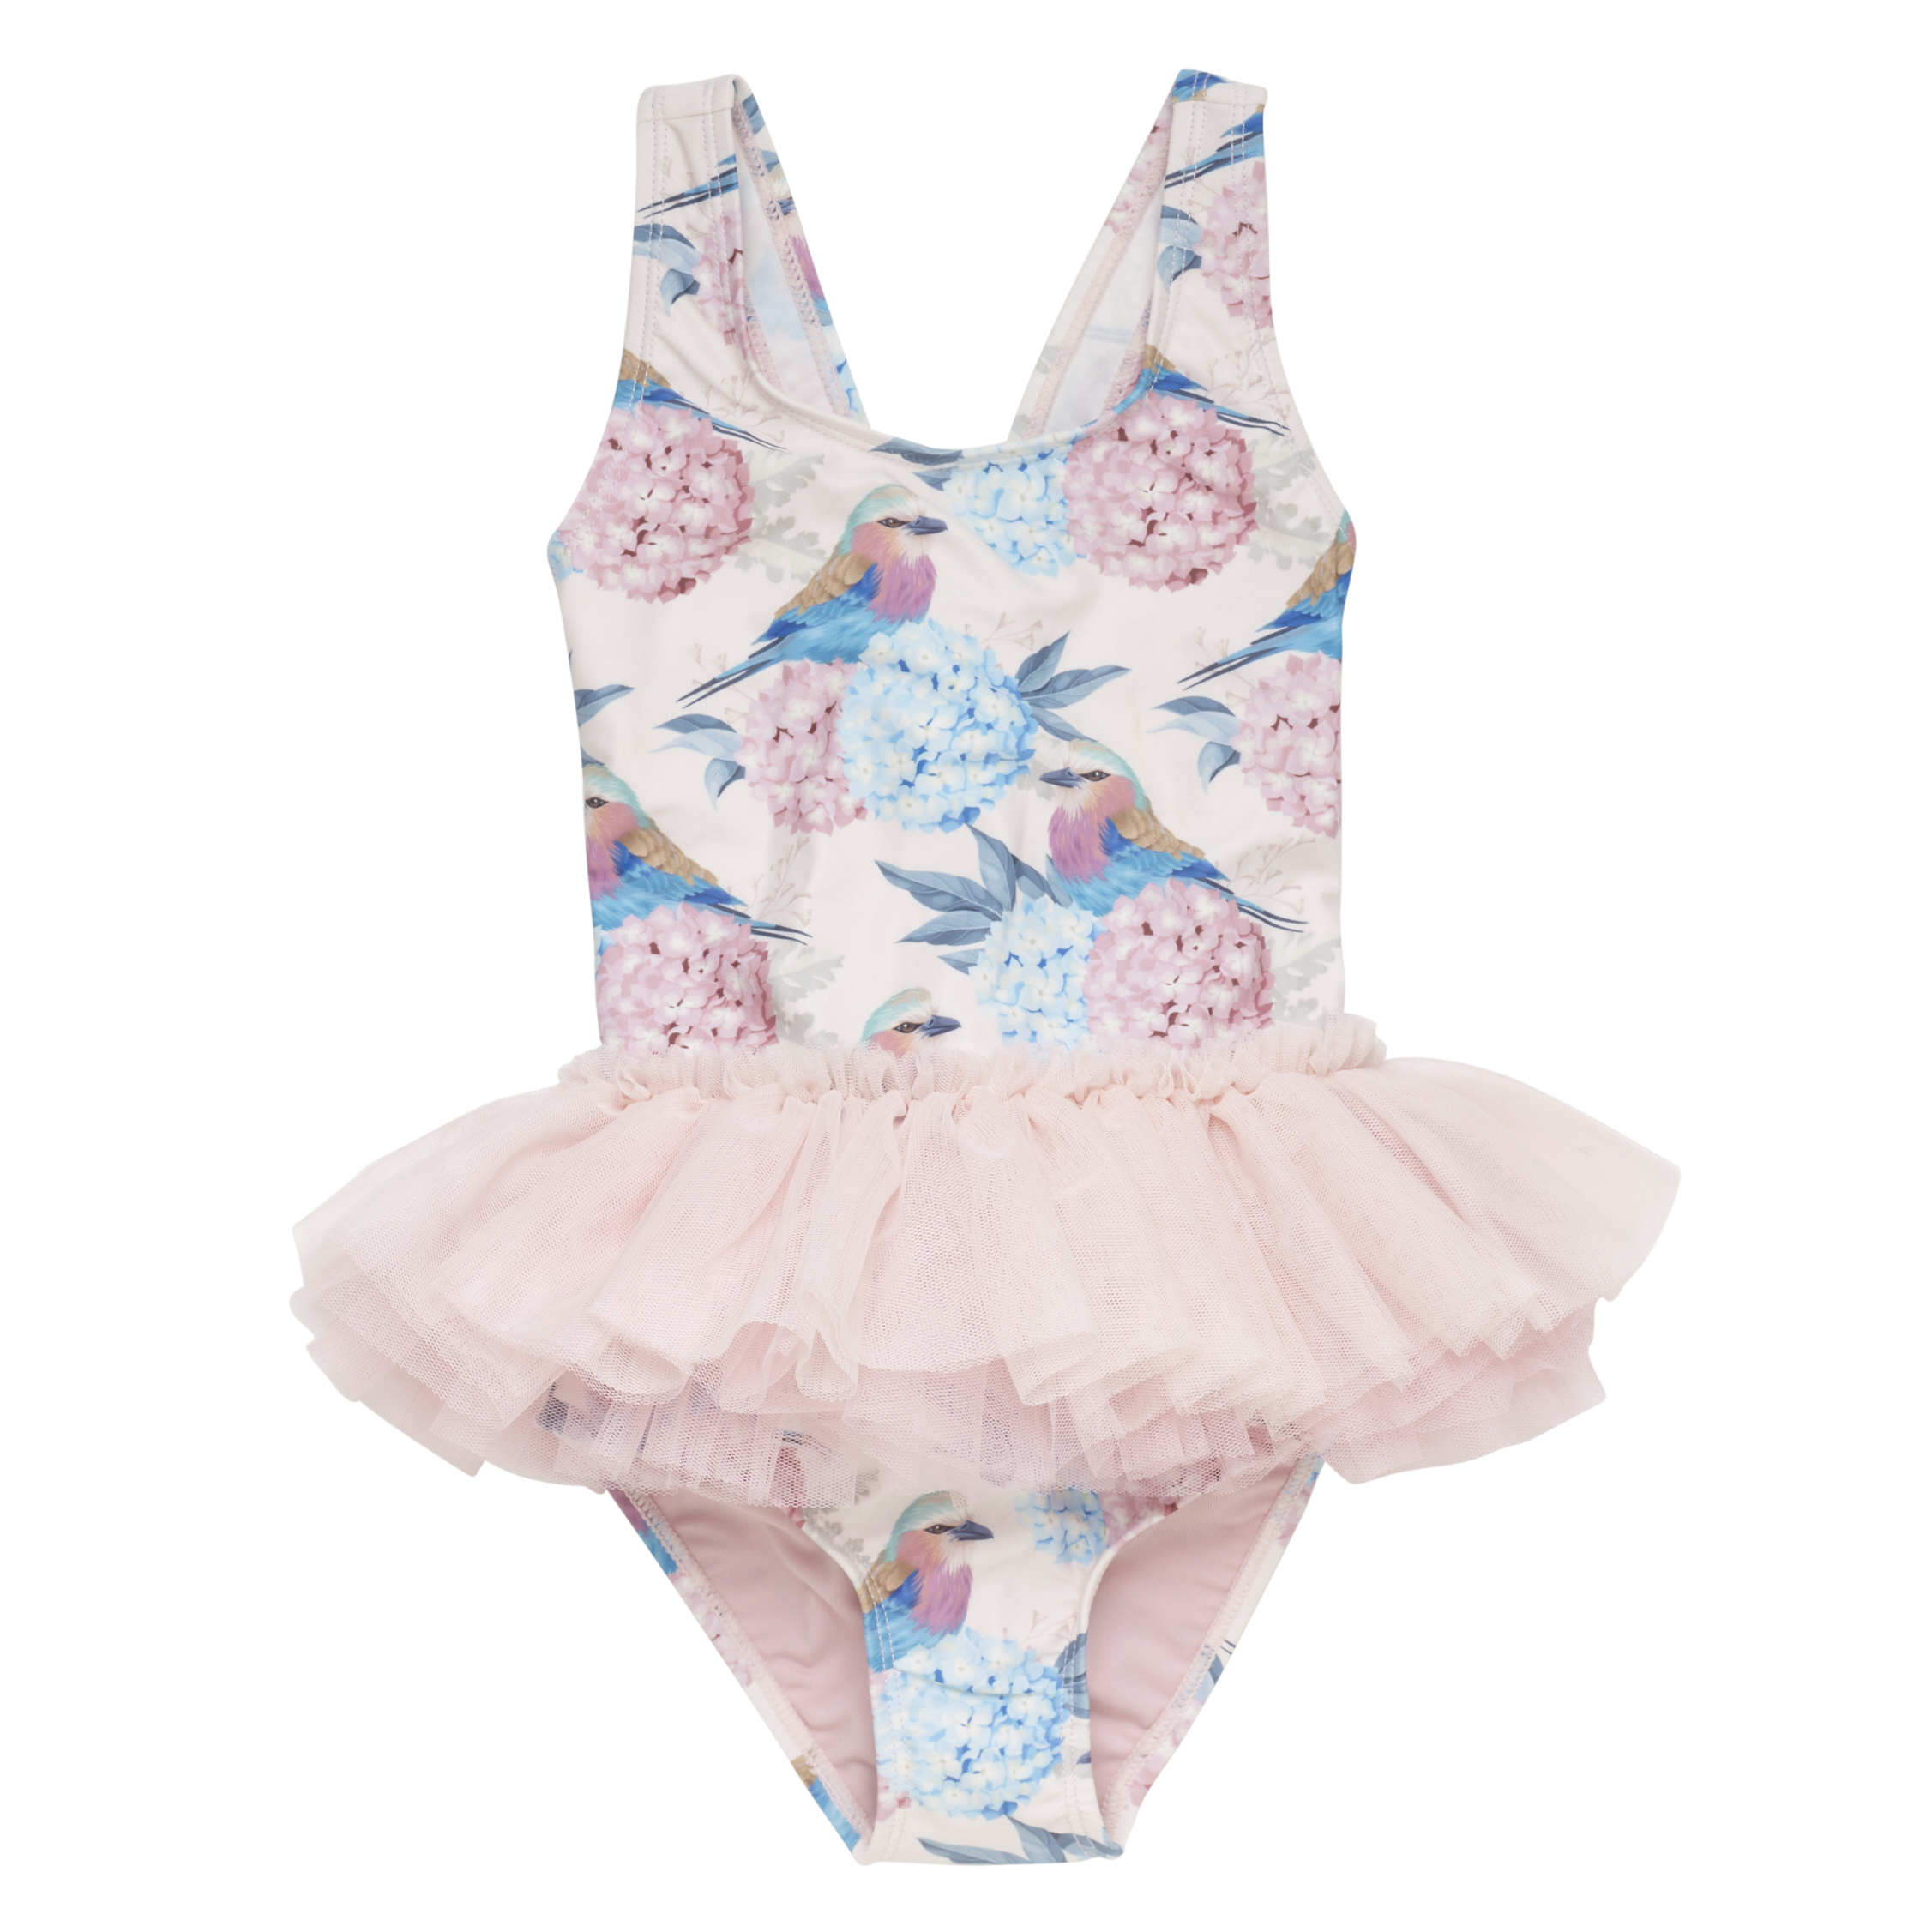 980027cffd3ff Rock Your Kid Birdie Tulle One Piece - CLOTHING-SWIMWEAR : Kid Republic -  S18/19 Rock Your Kid